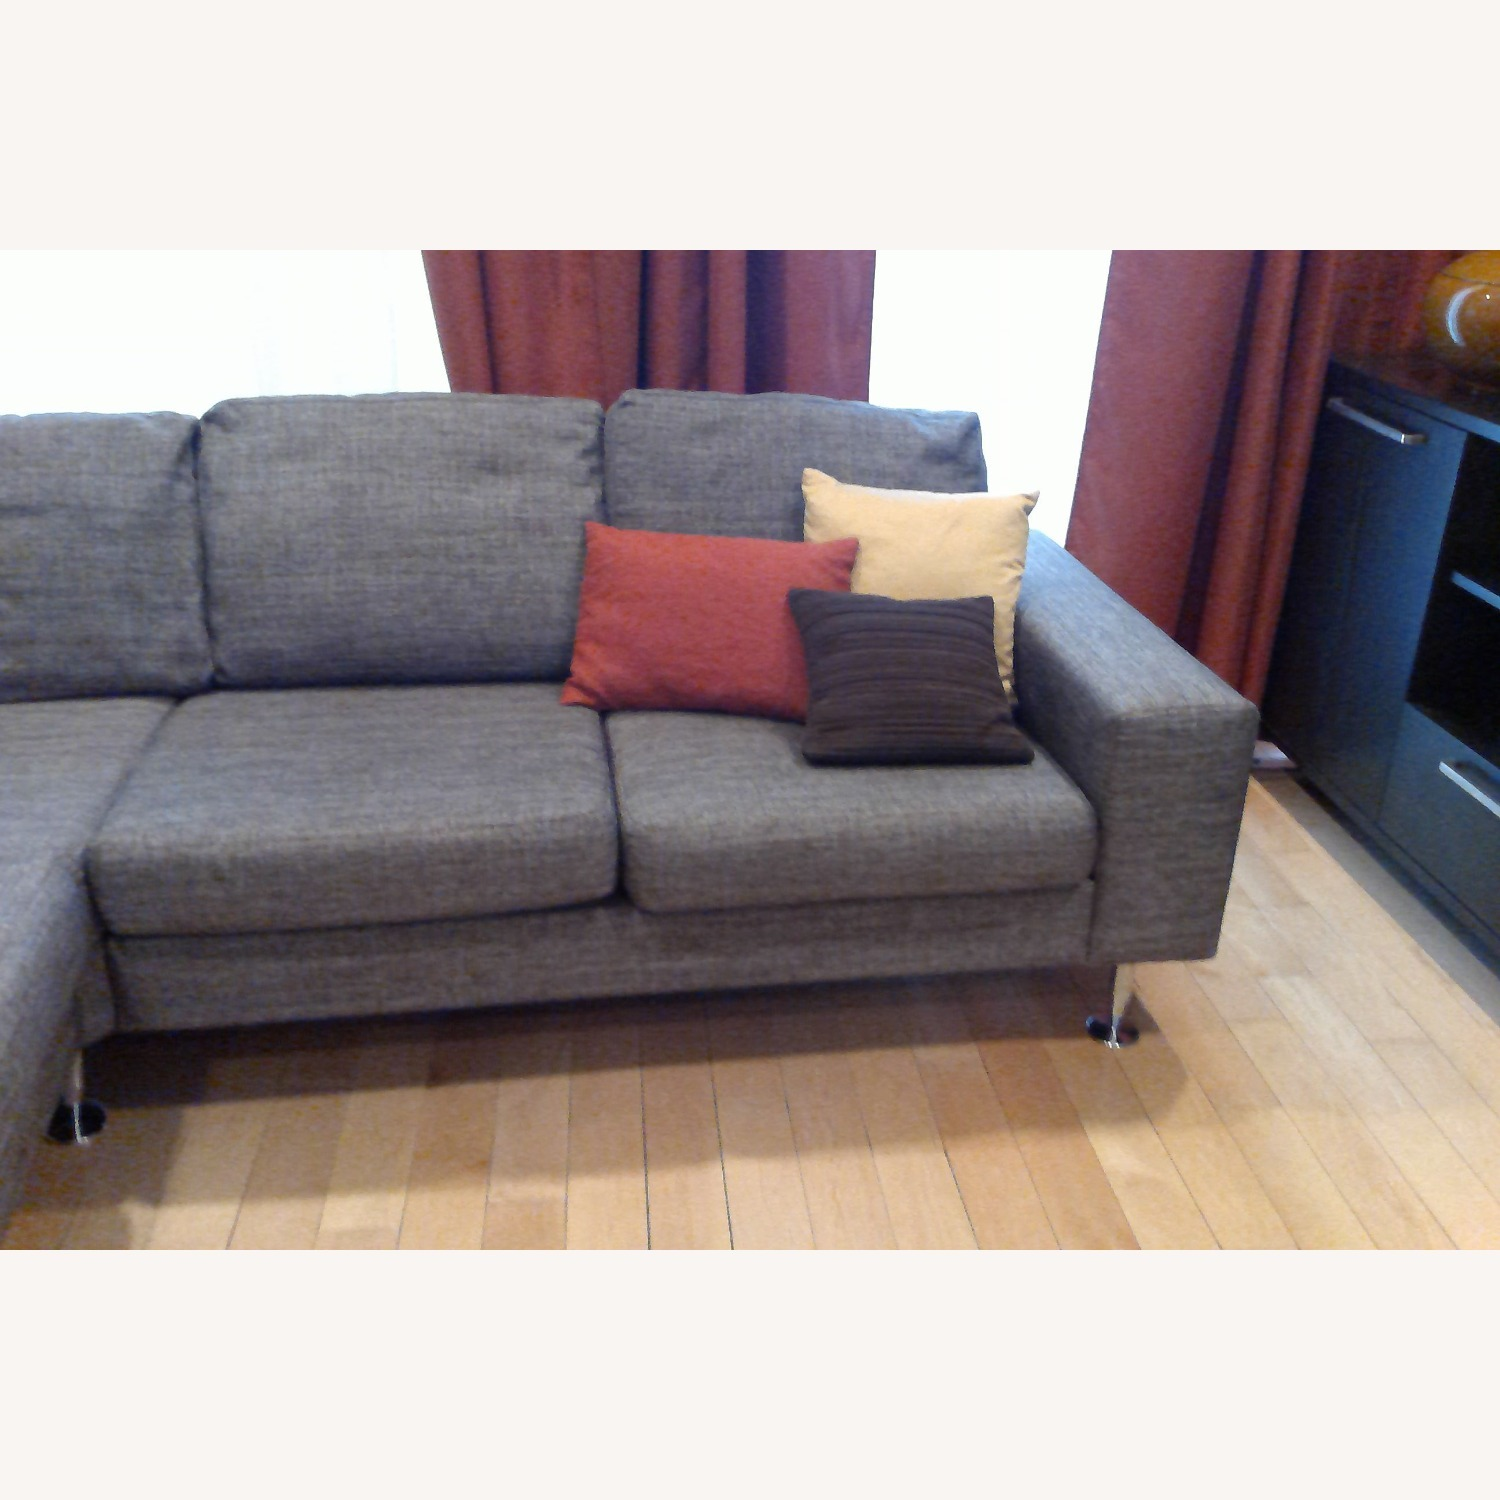 BoConcept 3 Piece Sectional Sofa with Ottoman - image-12